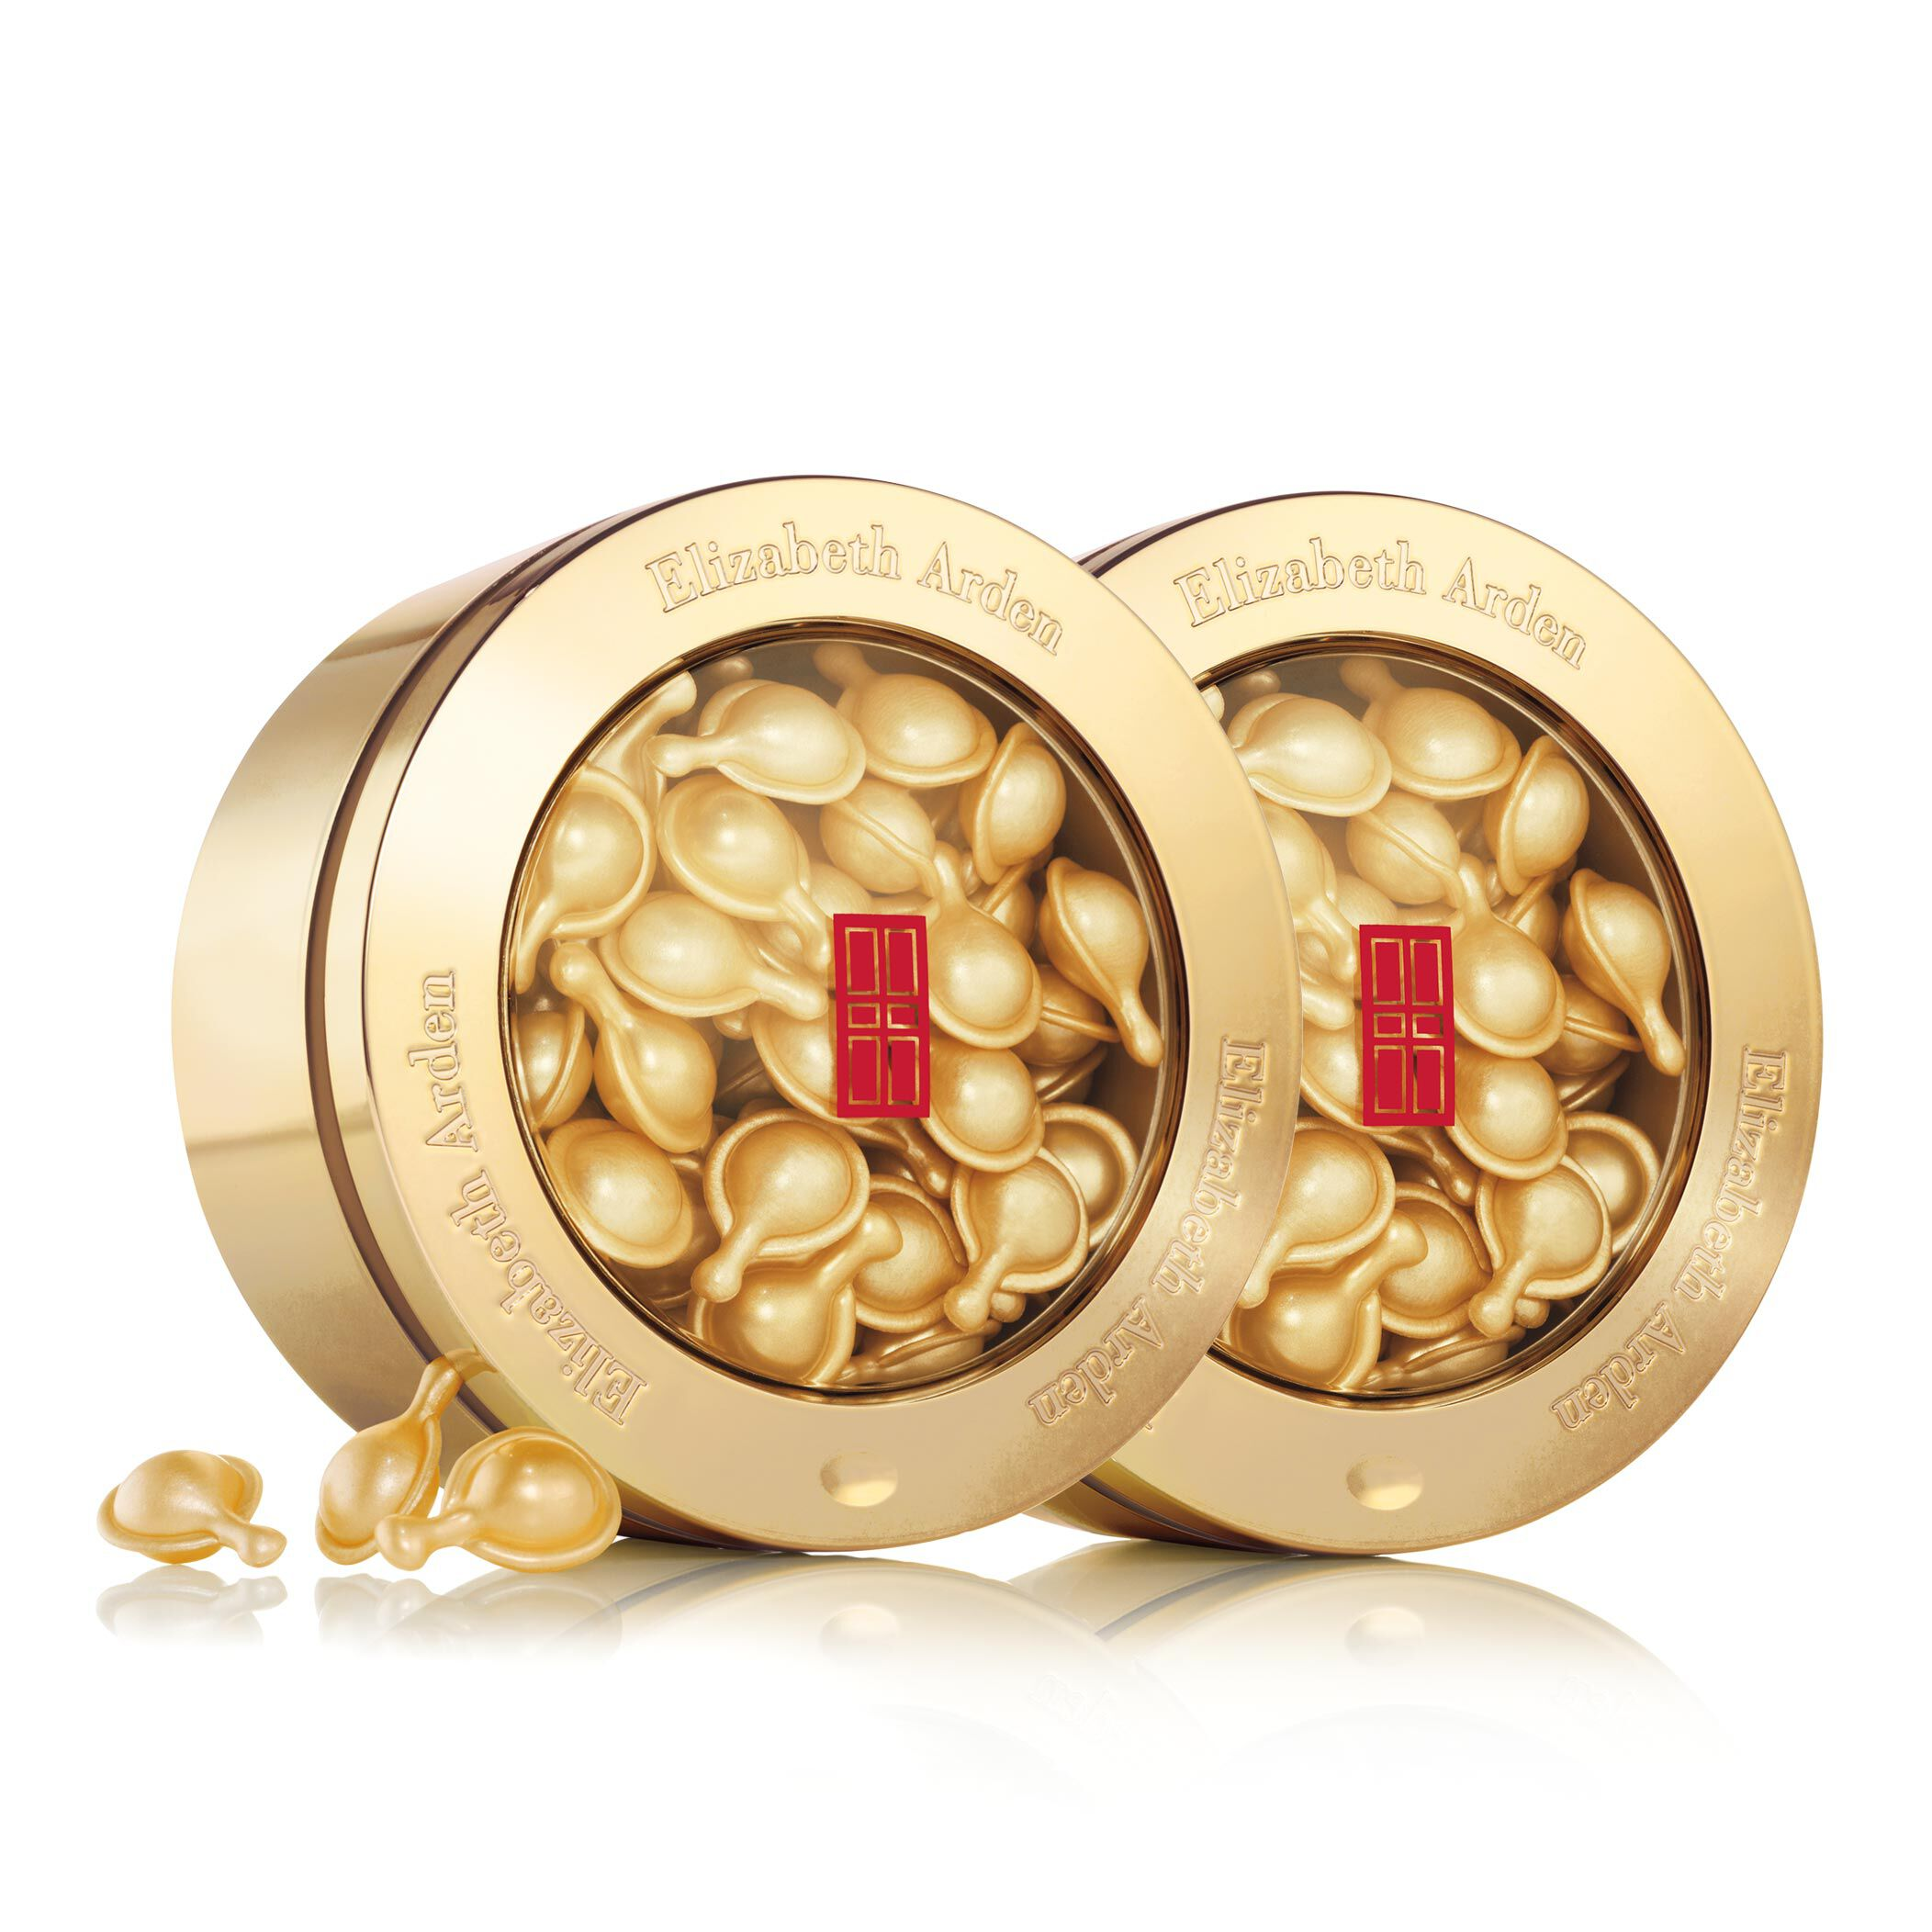 Limited Edition! Ceramide Capsules Youth Restoring Face Serum Duo -120 Piece, (a $152 value)